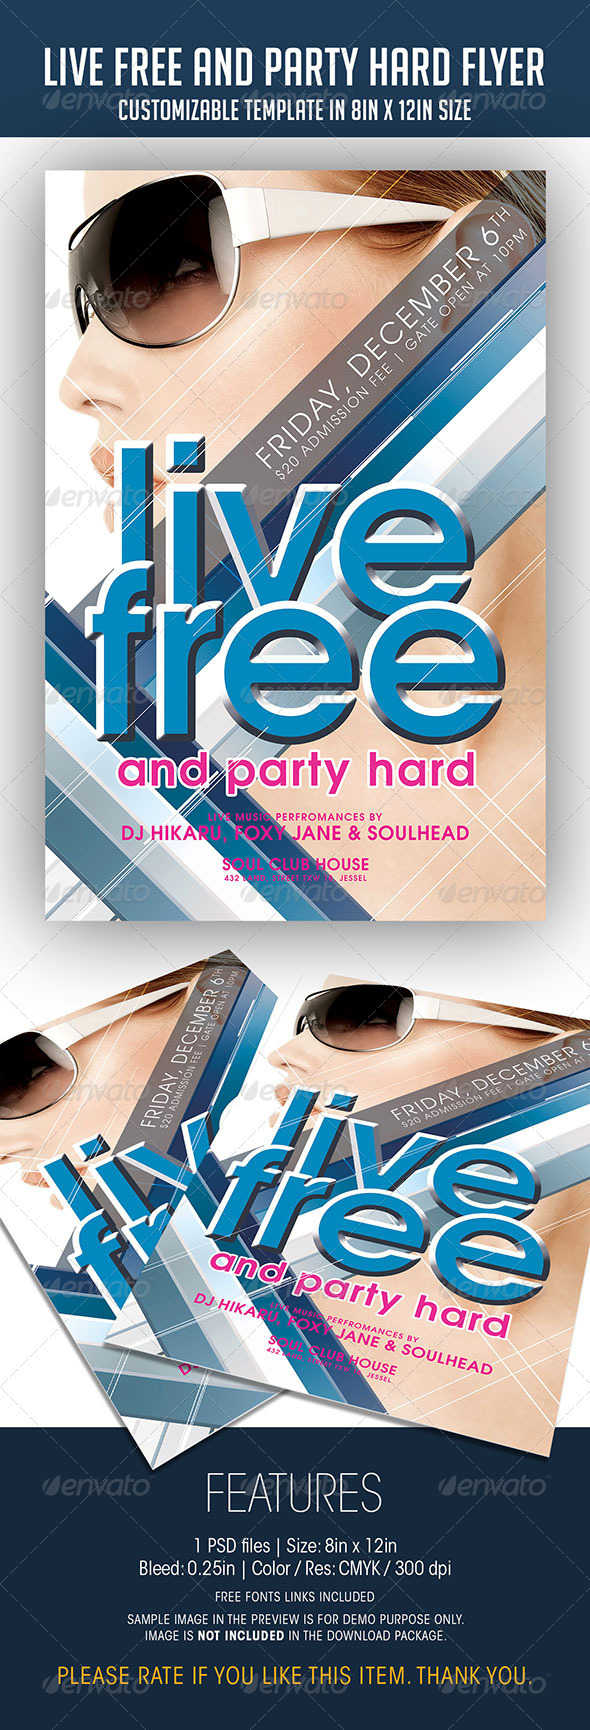 Live Free And Party Hard Flyer - Clubs & Parties Events